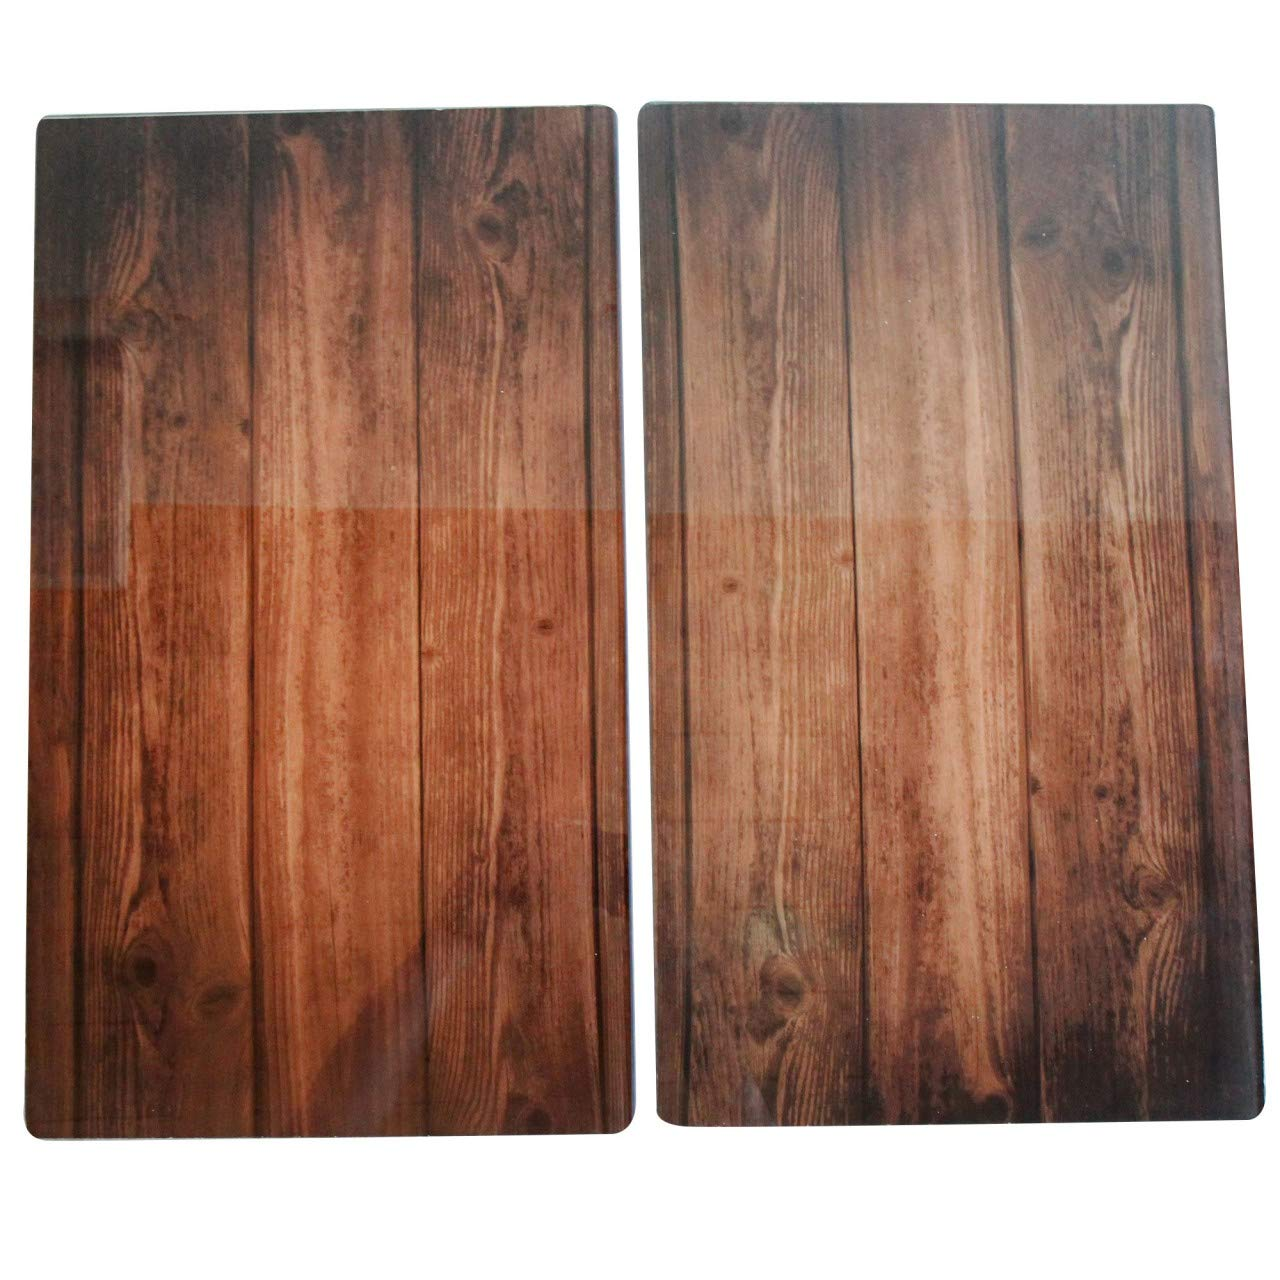 Stoneline 17899/wooden effect glass stove cover//chopping board set 2/pieces 52/x 30/x 0.4/cm plate 53/x 31/x 8/cm 2/units glass nature